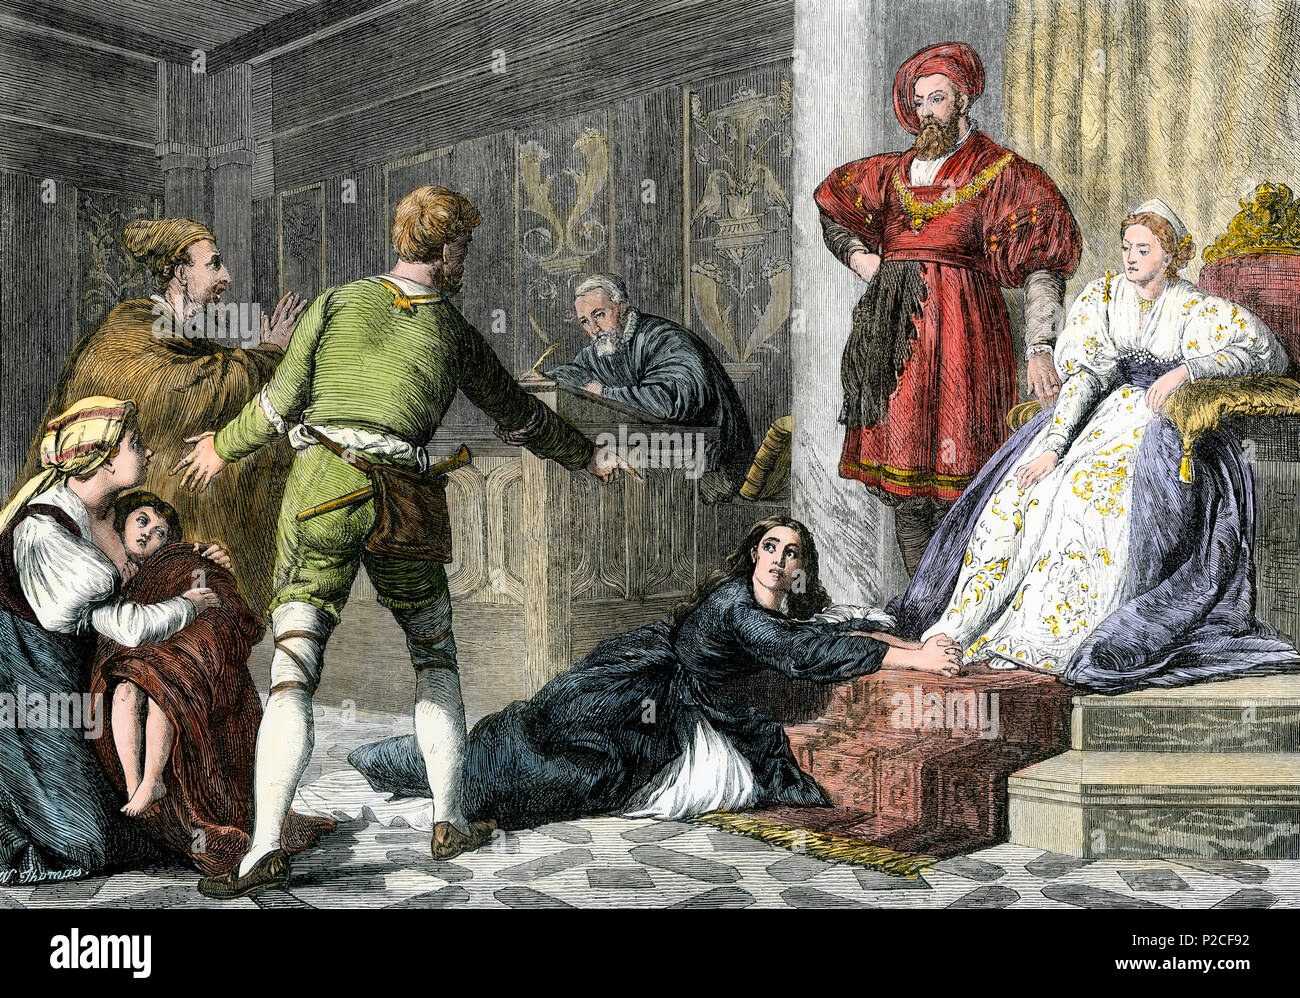 Jew's daughter accused of witchcraft in the Middle Ages.  Hand-colored woodcut - Stock Image